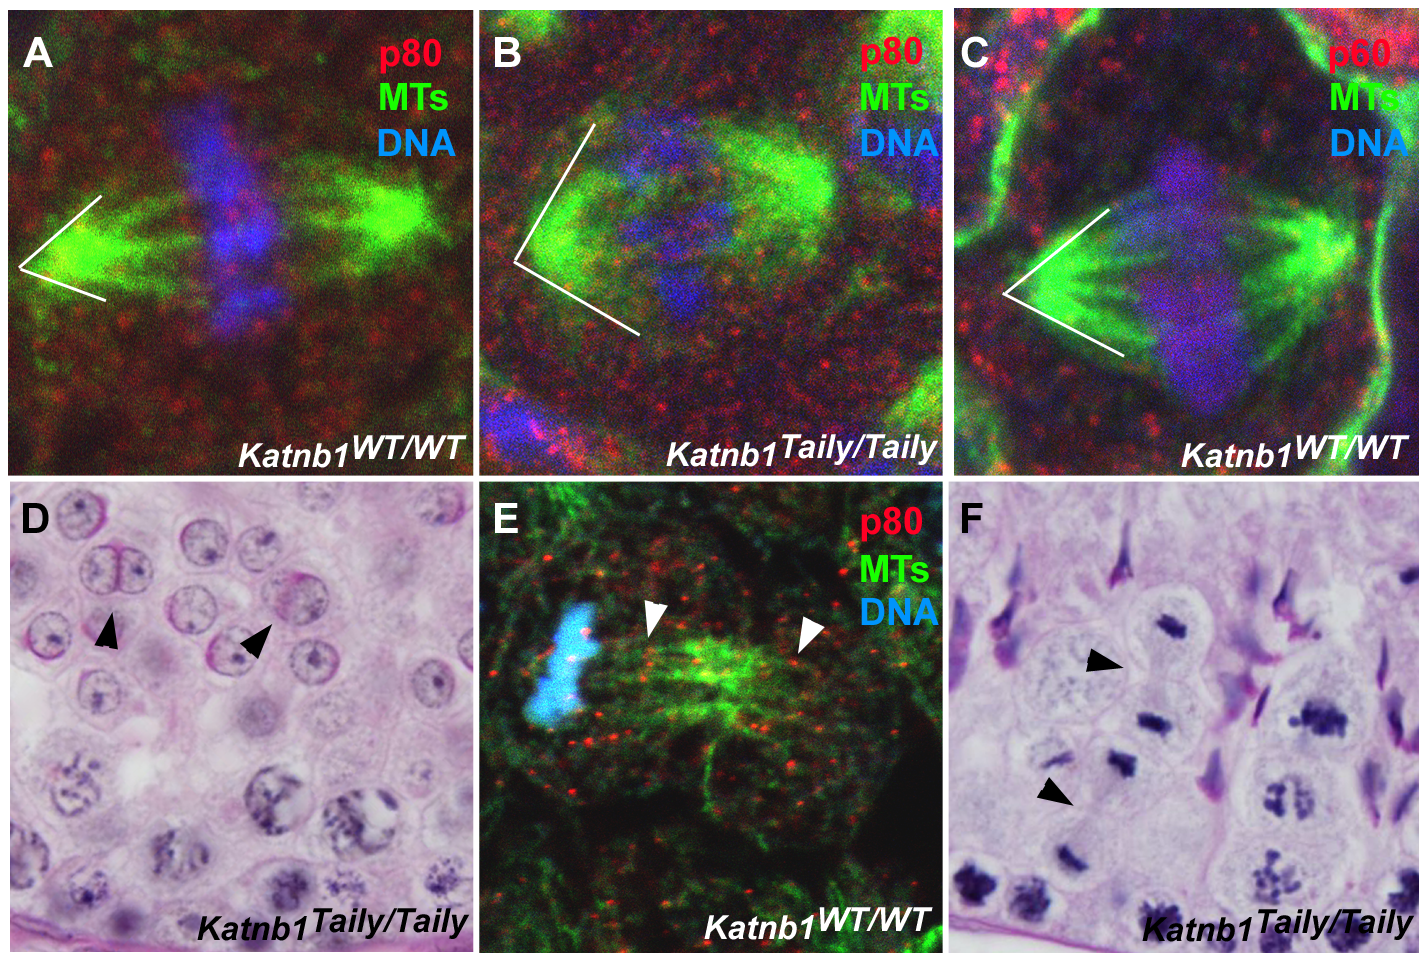 Defective meiotic division in <i>Katnb1<sup>Taily/Taily</sup></i> male gametes.